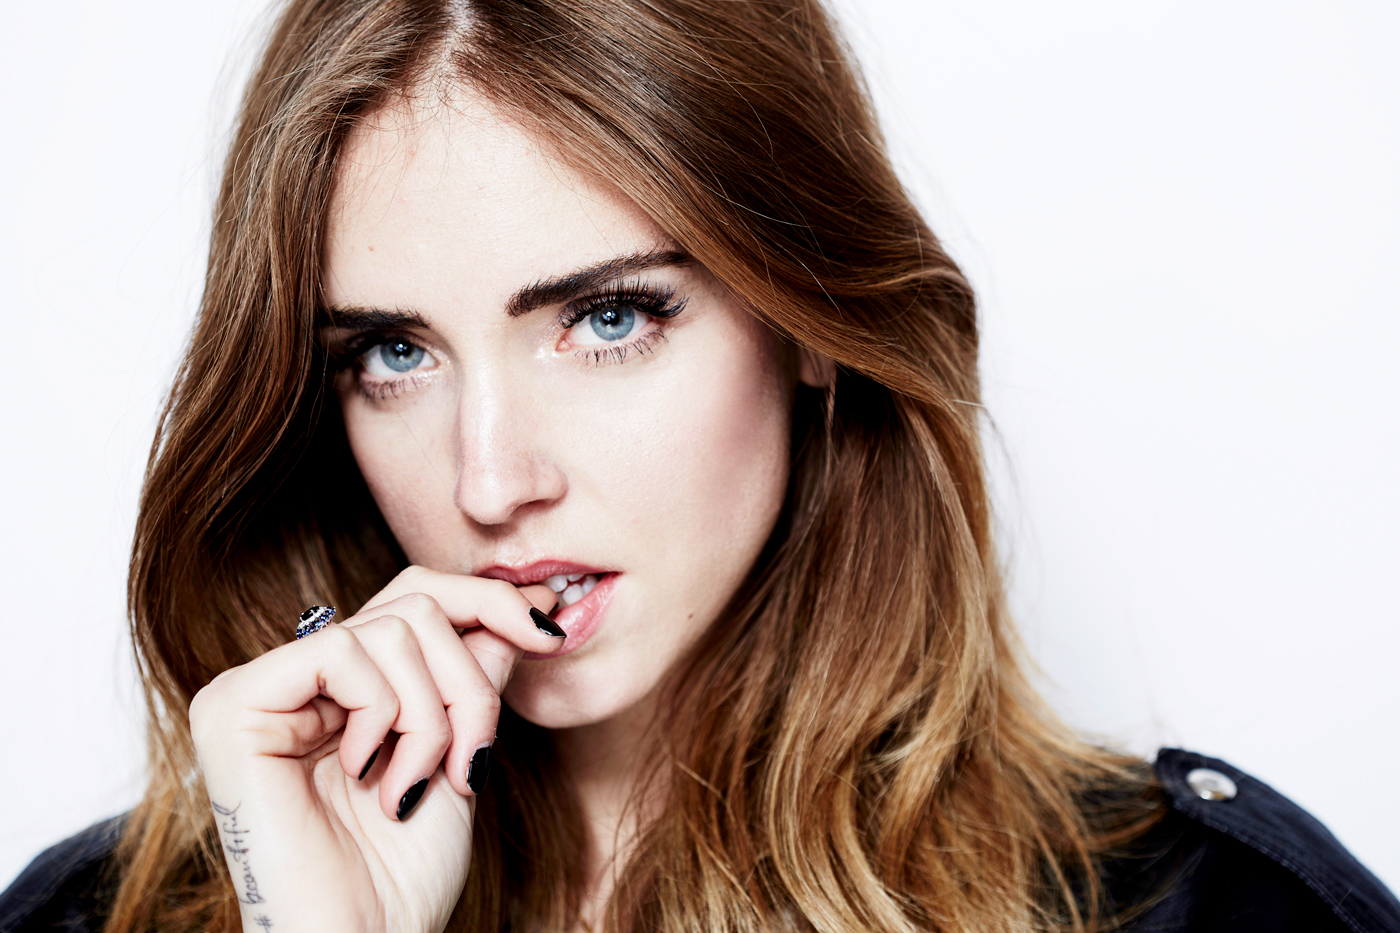 Chiara Ferragni: The 8 + 1 swimsuit she wore the No1 bloggers warming-http://re-elfashion.com/